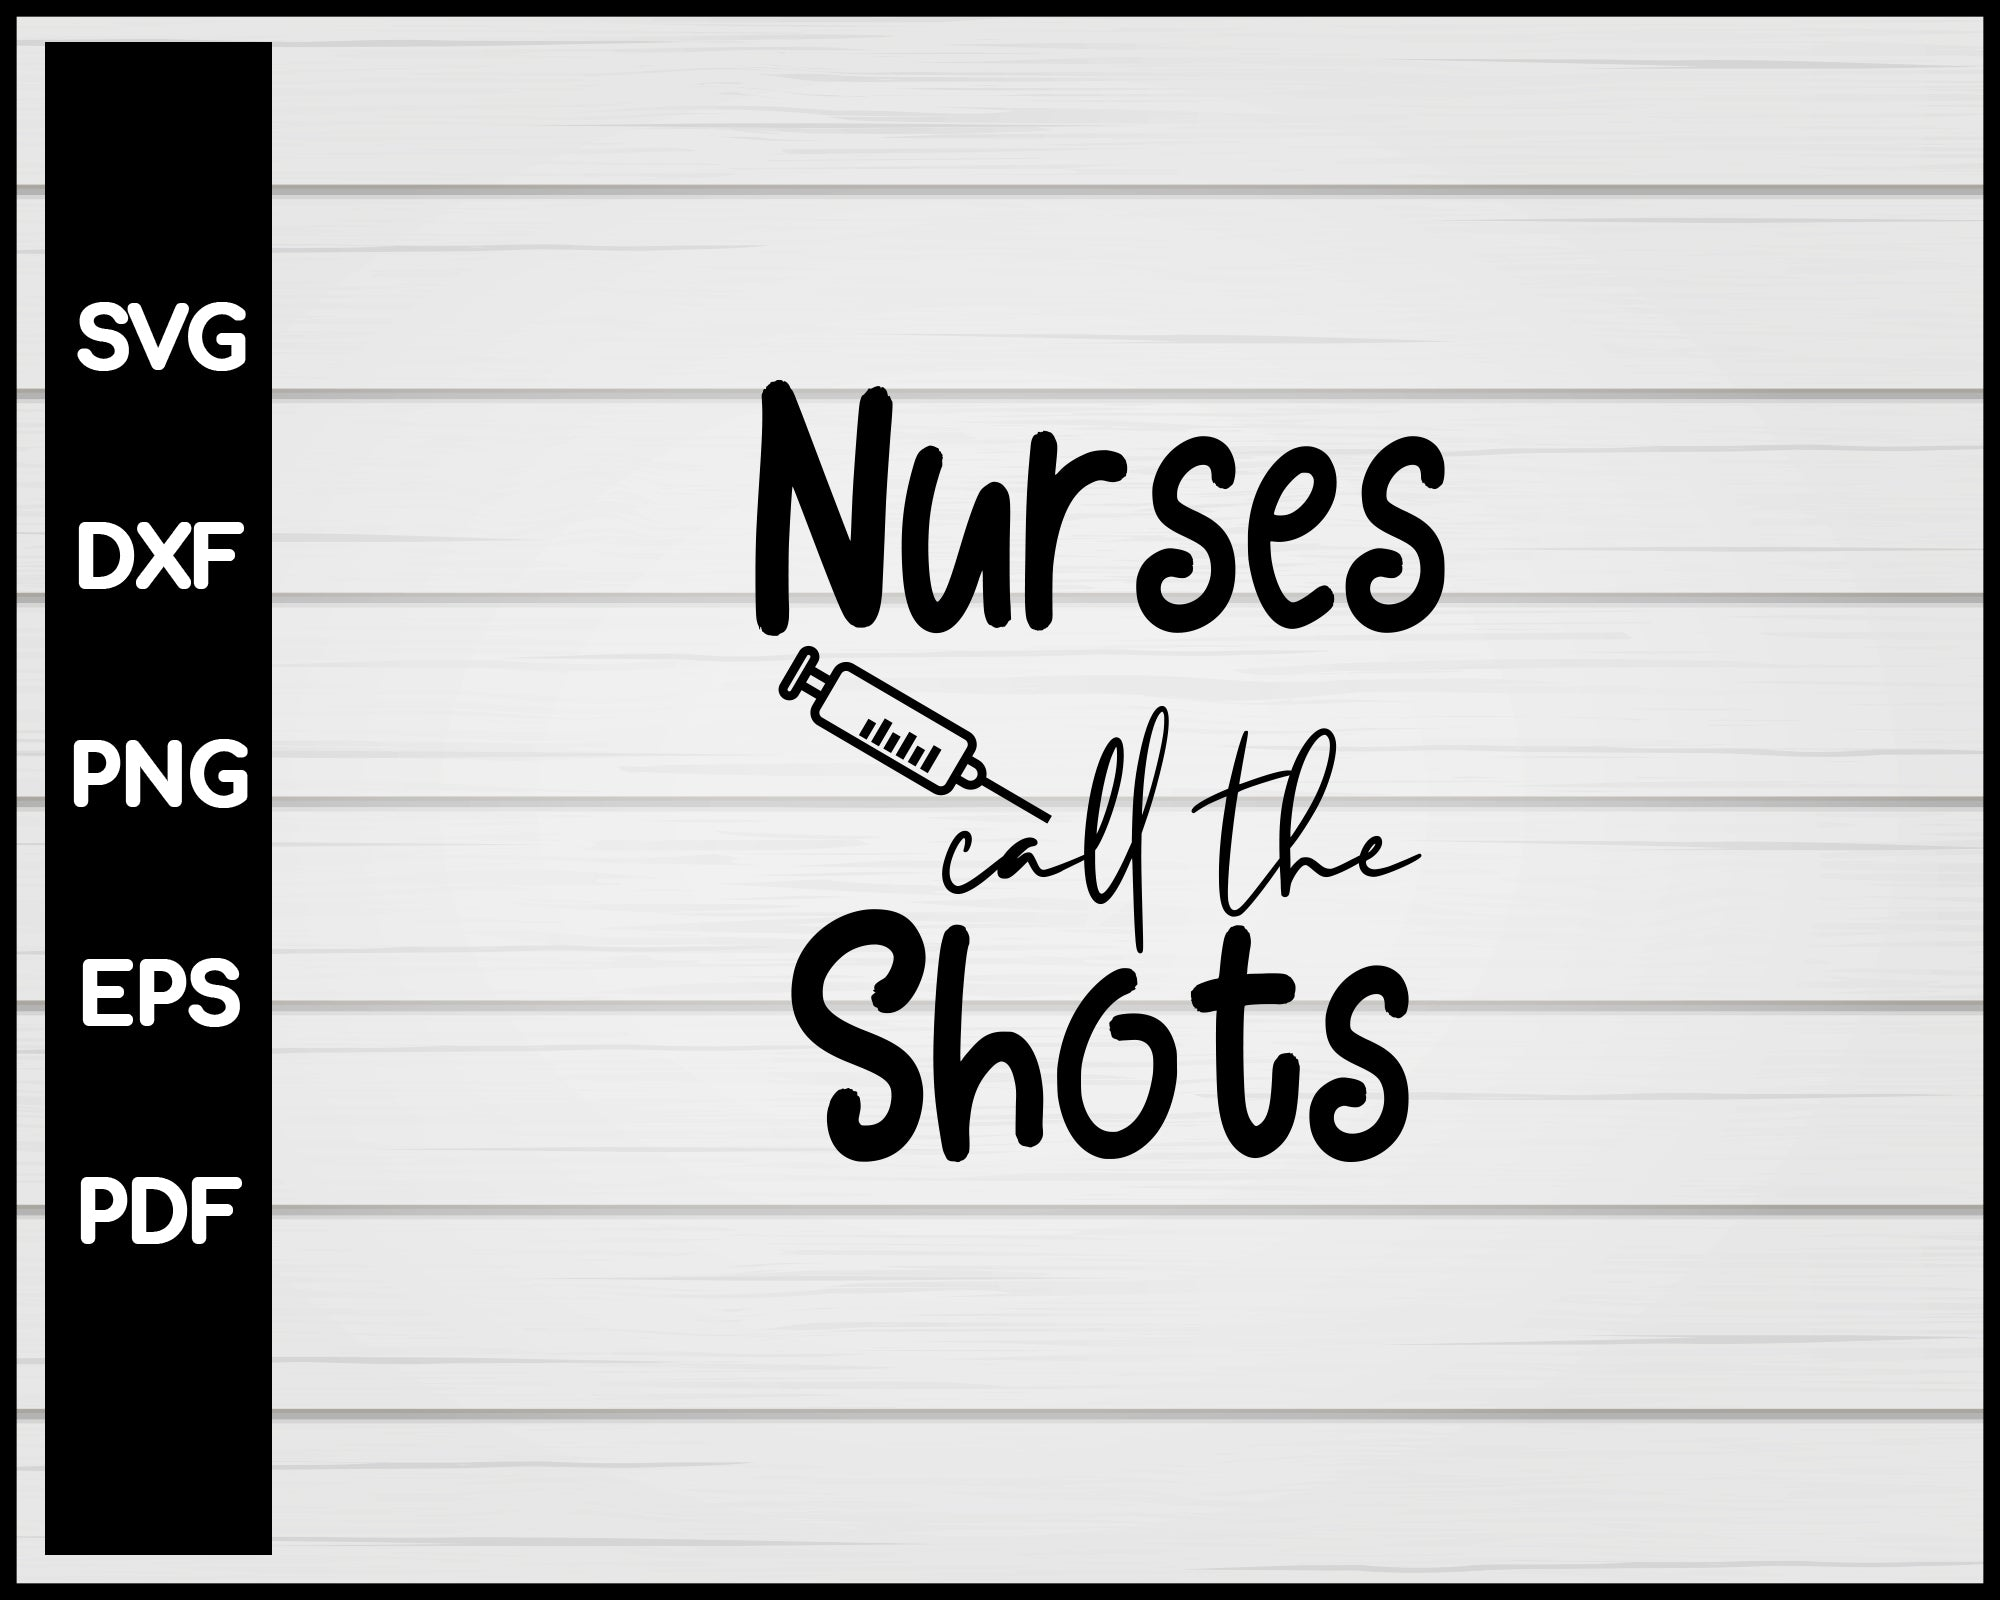 Nurse Call The Shots svg Cut File For Cricut Silhouette eps png dxf Printable Files